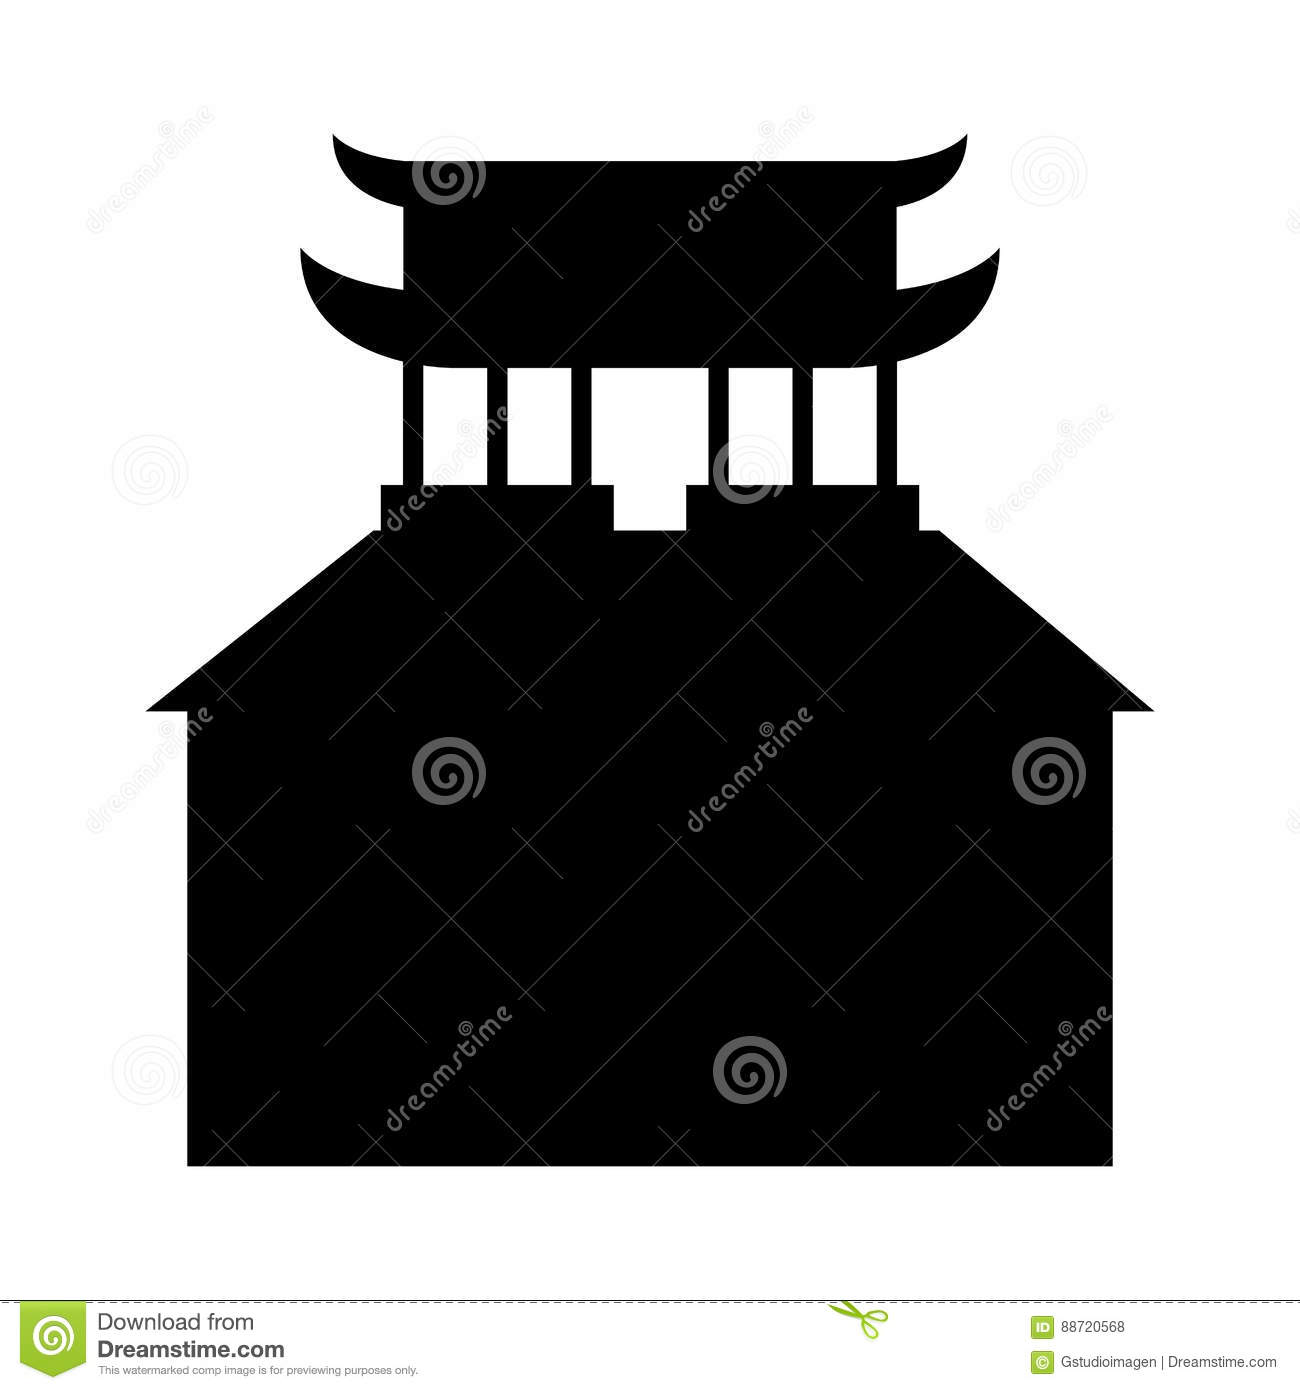 asian building castle icon stock vector - image: 88720568